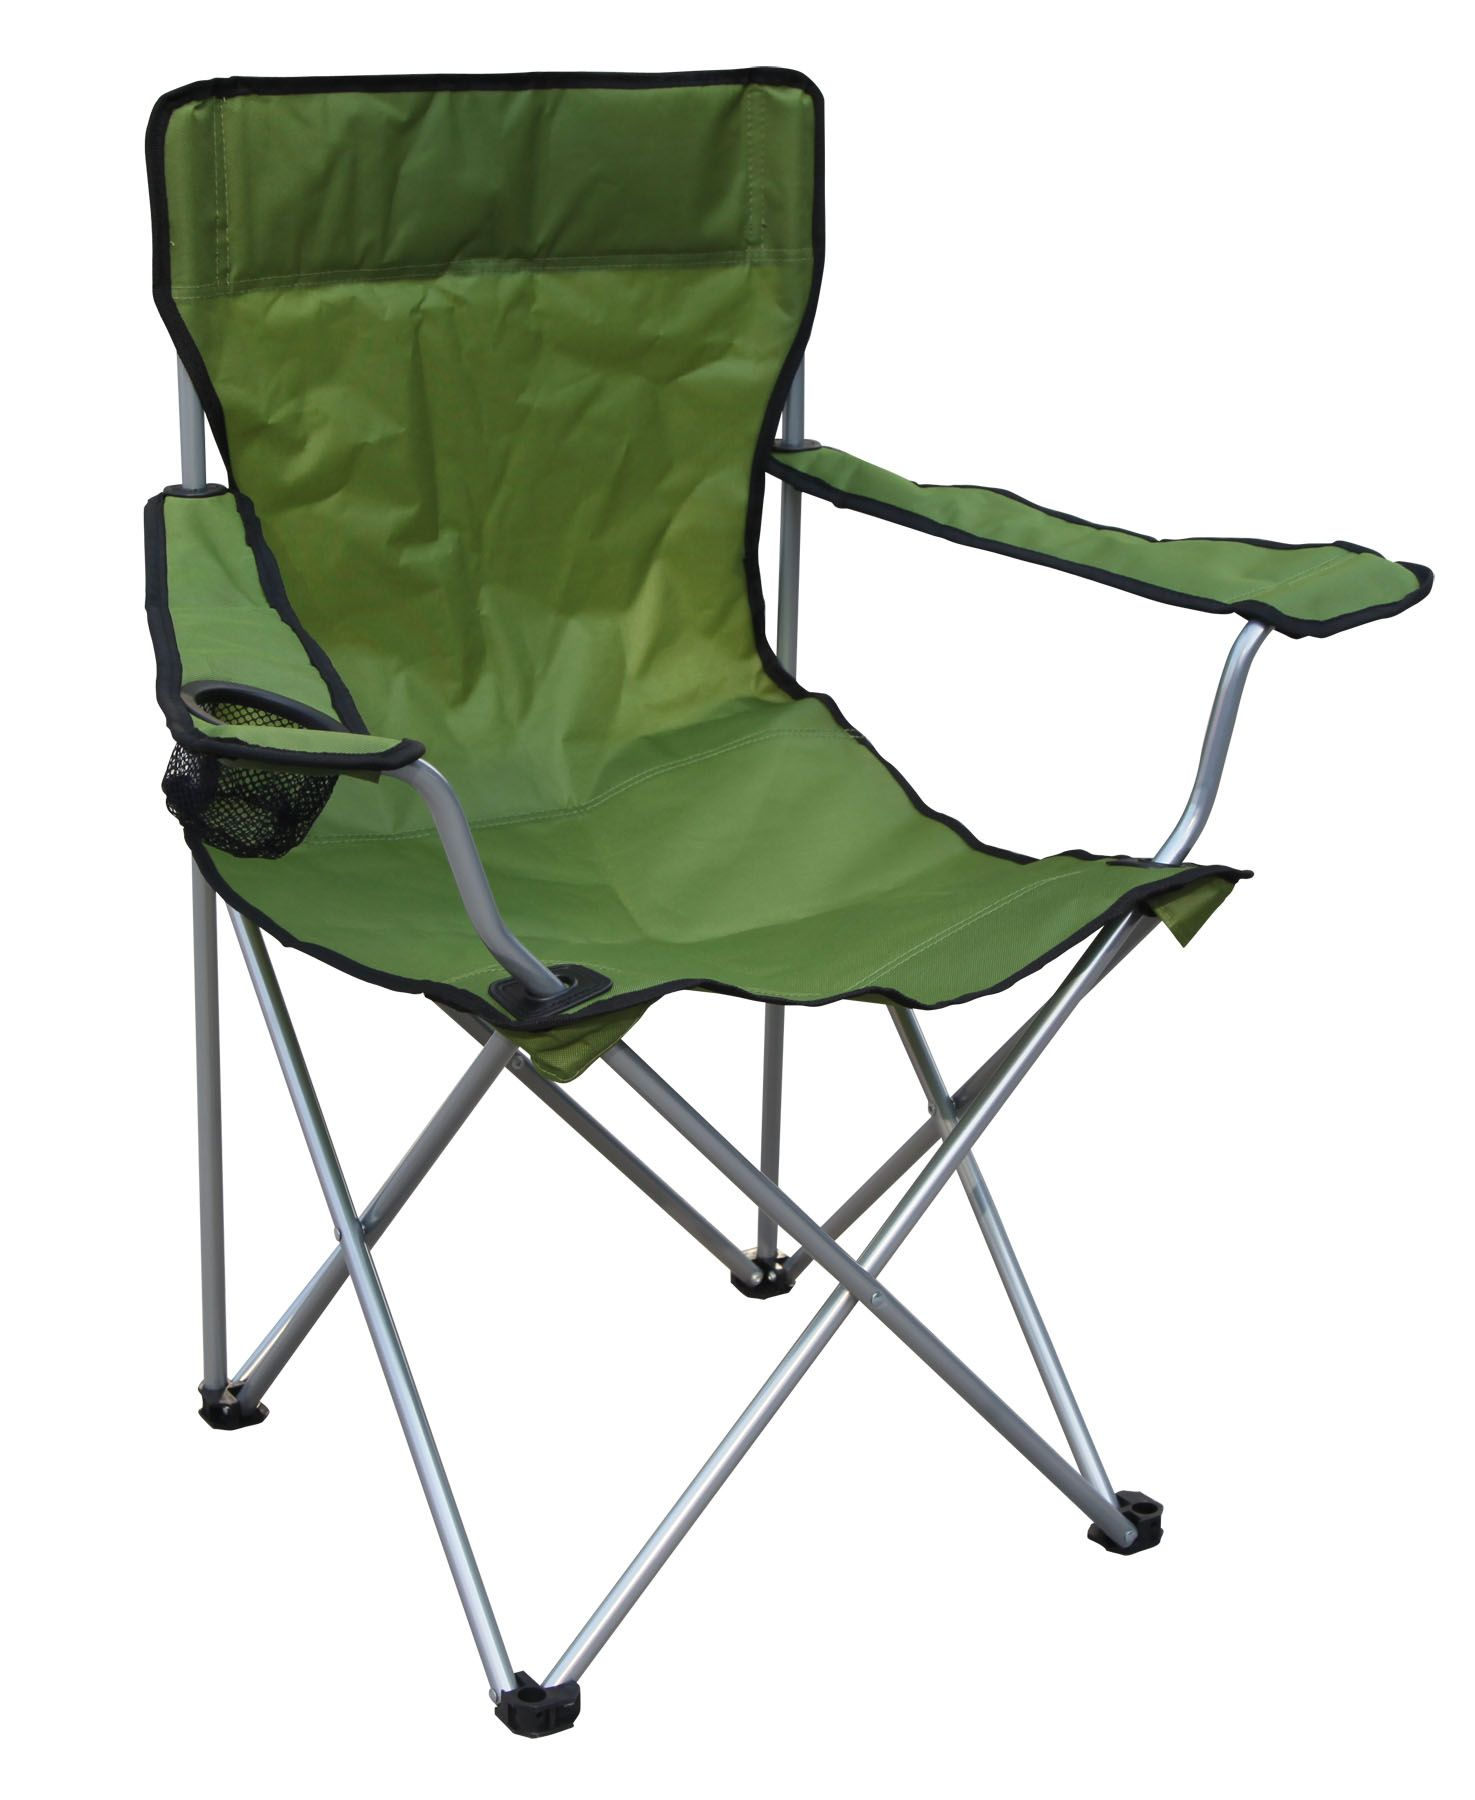 lightweight camping chair revolving repair in gurgaon chairs for ease and accessibility